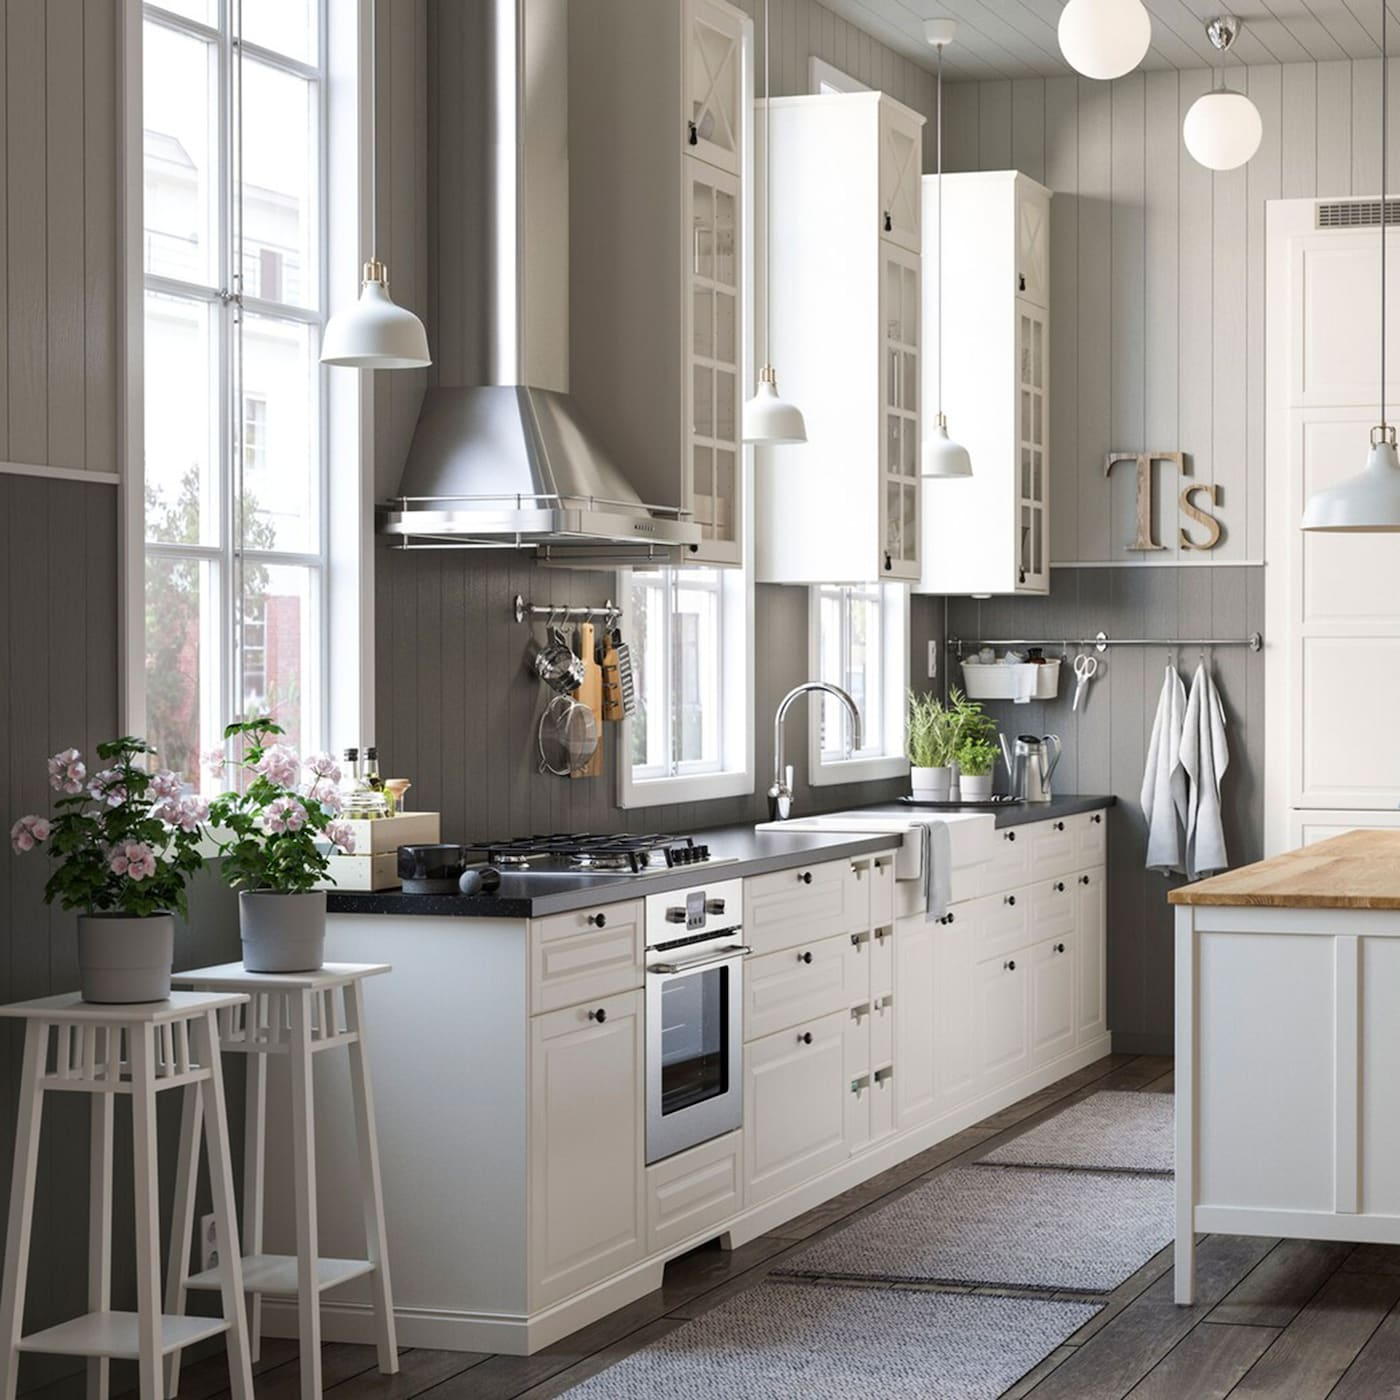 small kitchen storage ideas ikea gallery | Countryside kitchen in the city - IKEA